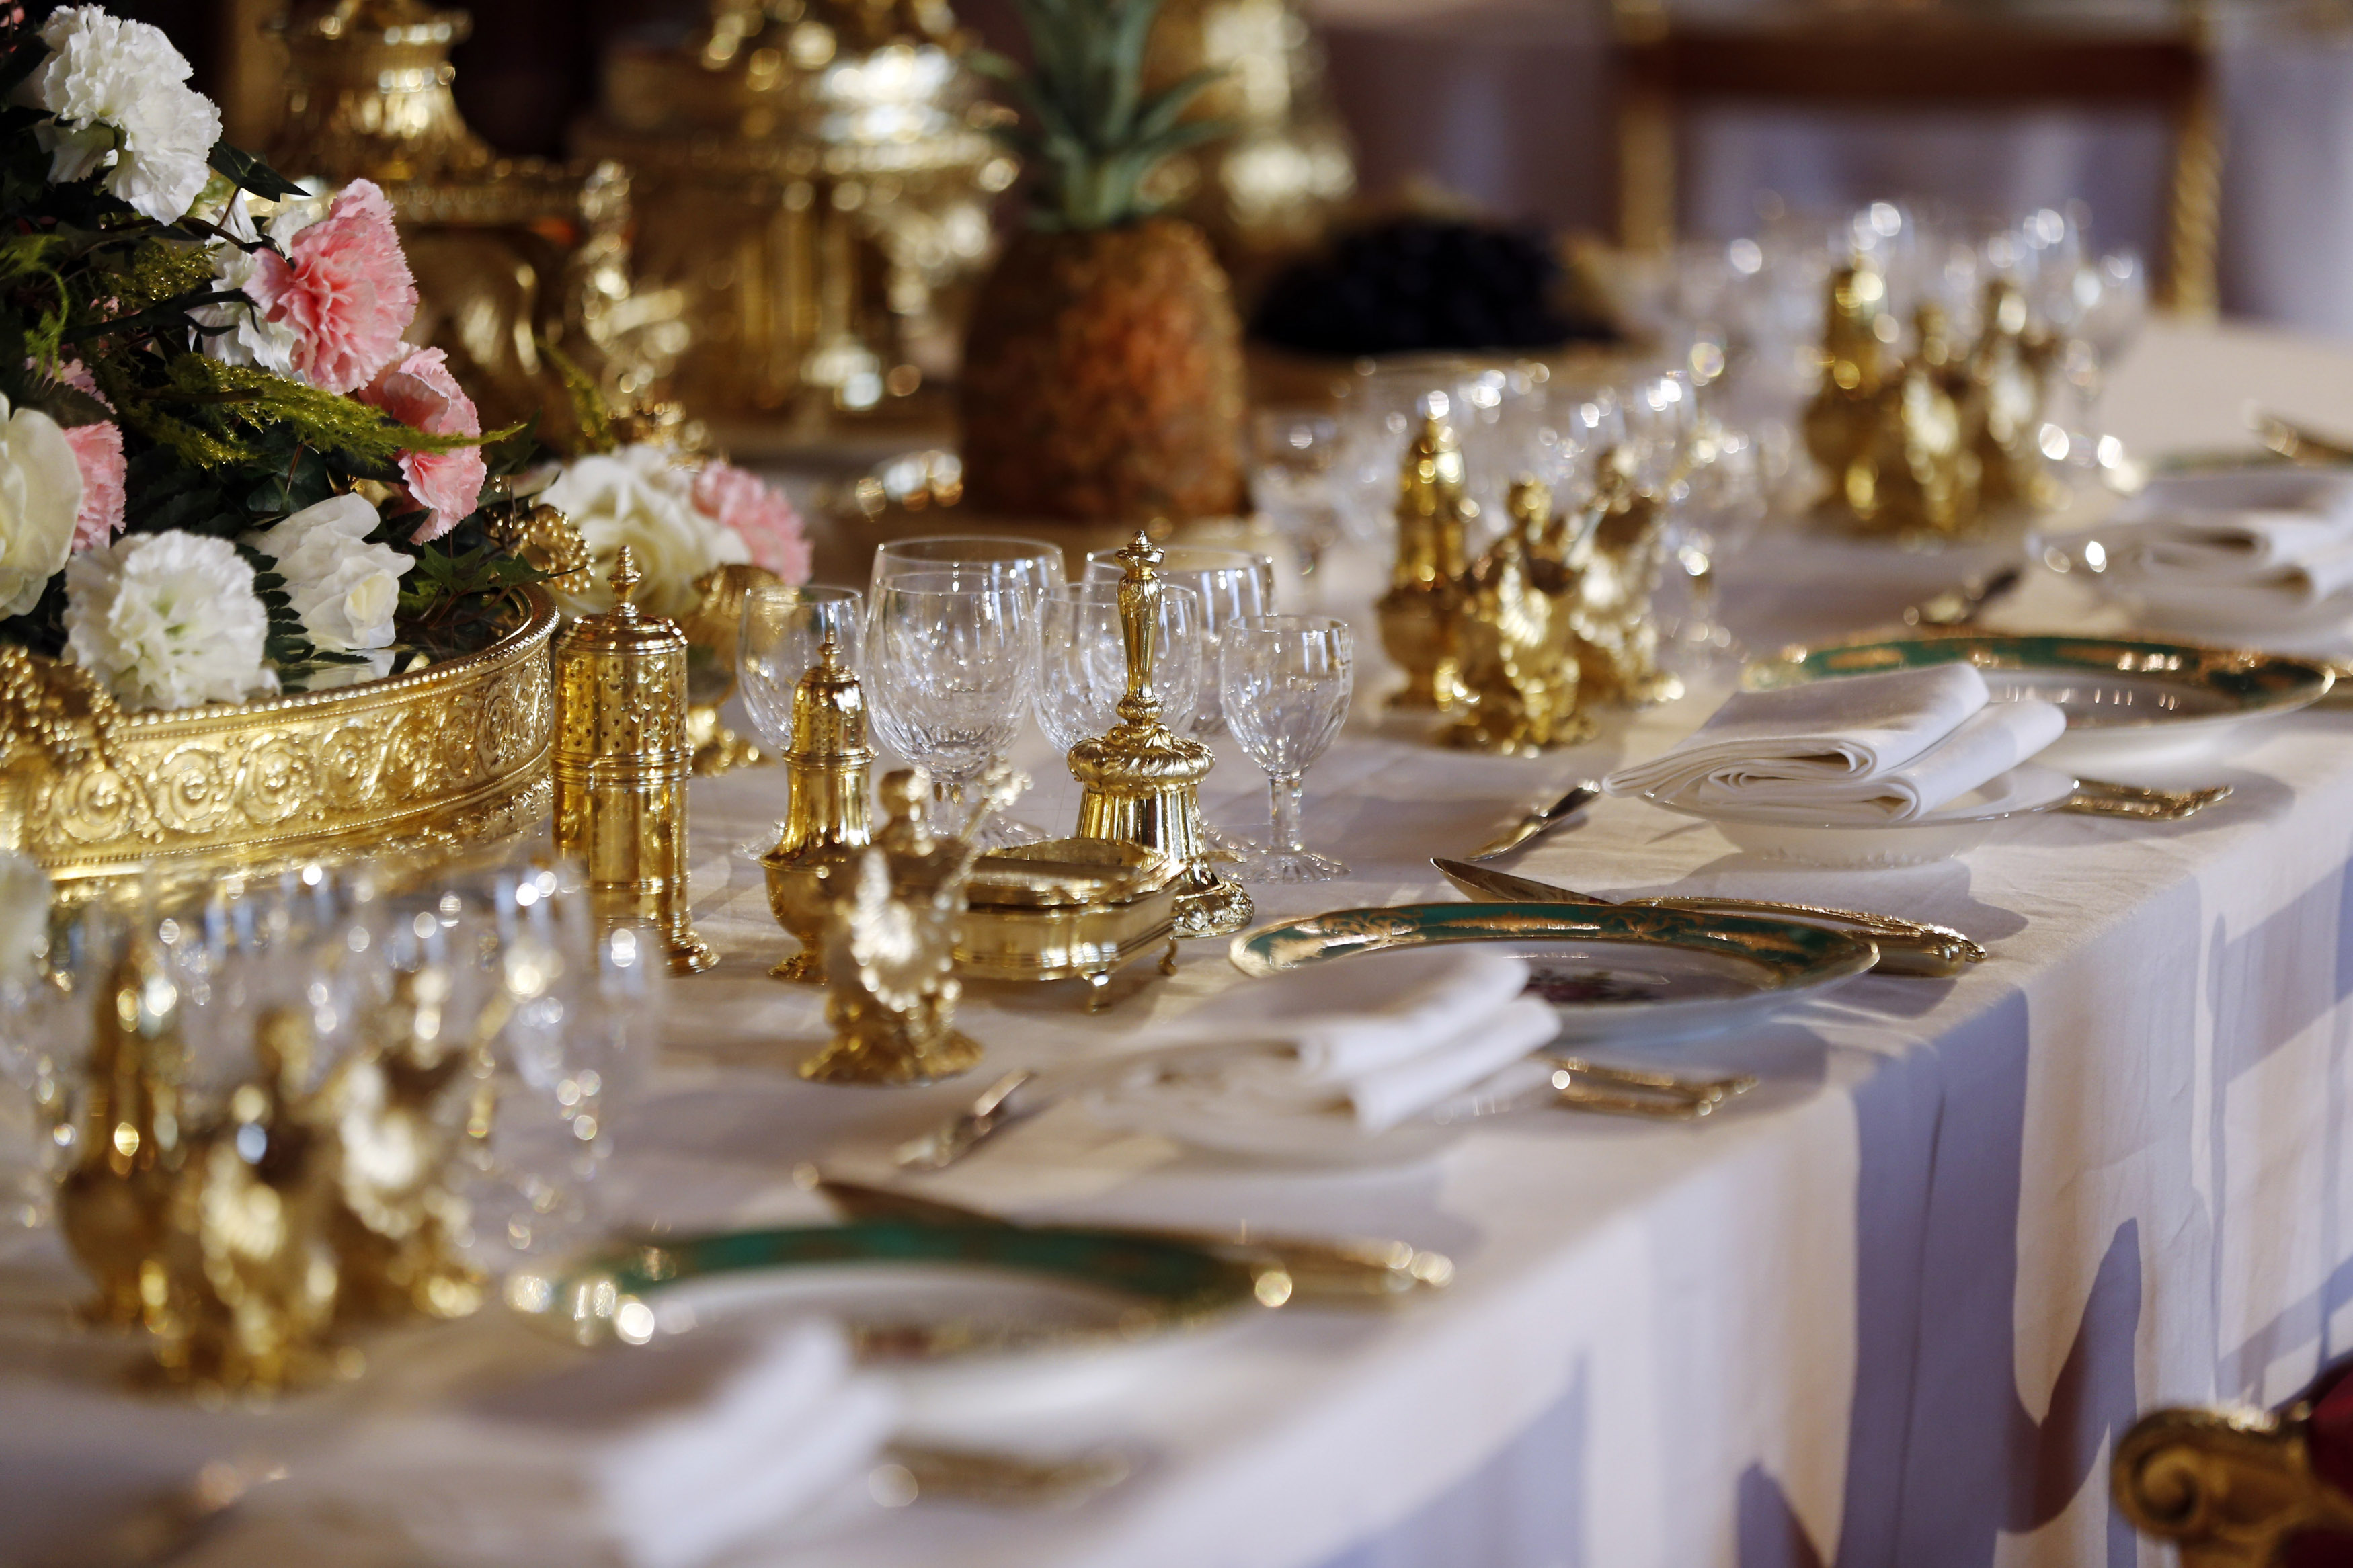 A table dressed to evoke the settings of Britain's Queen Elizabeth II's 1953 Coronation State Banquets.